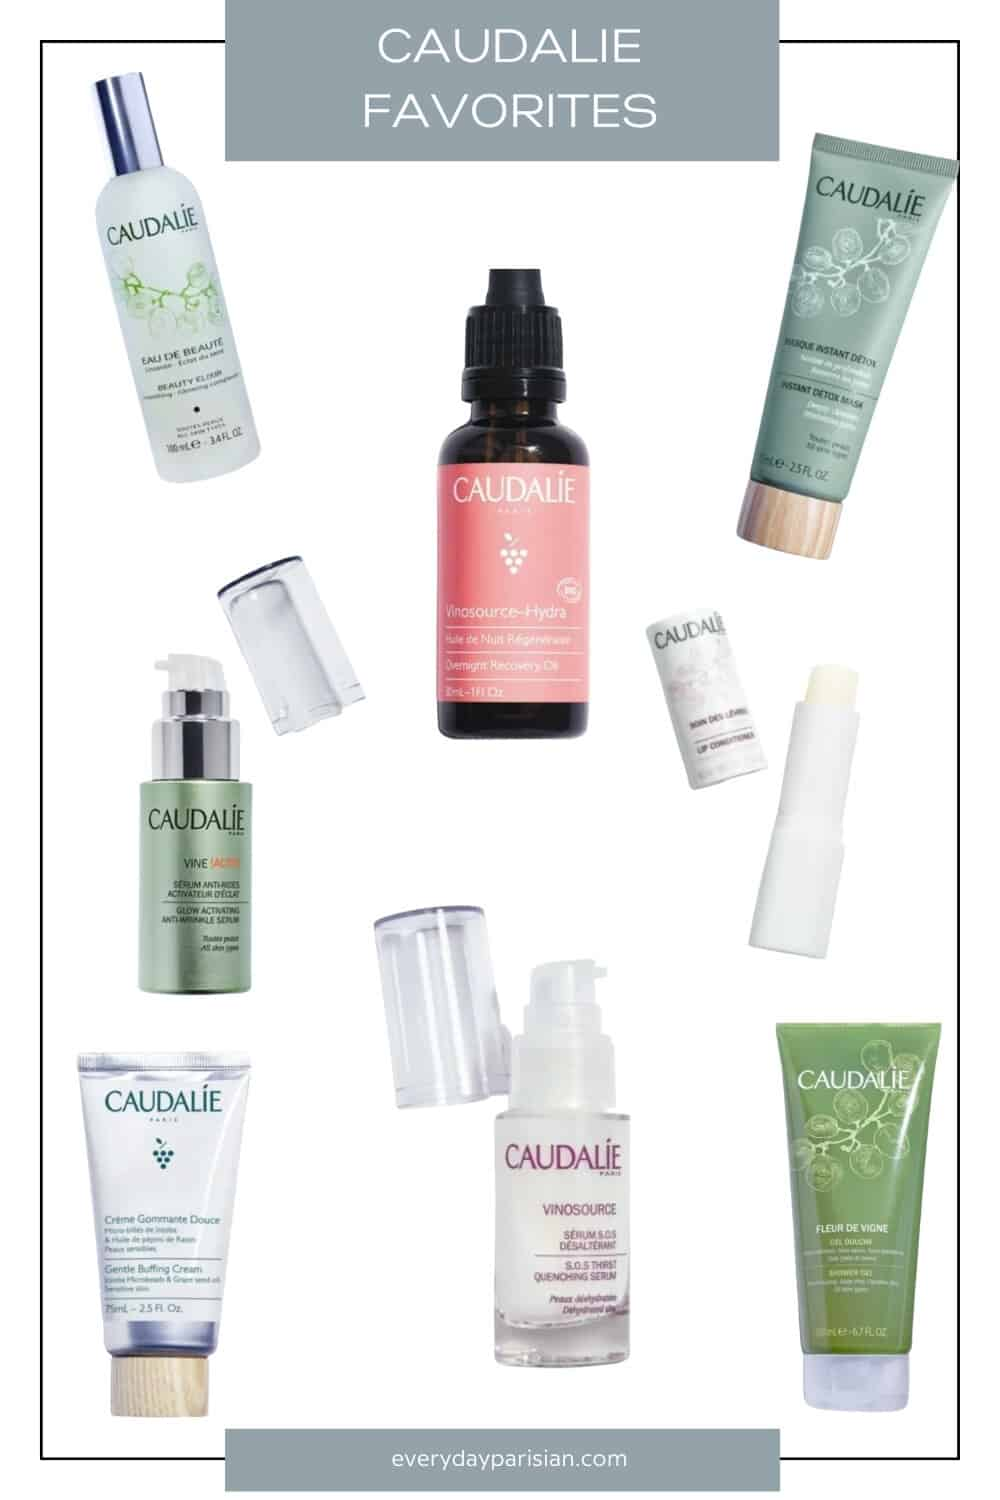 My Caudalie Favorites